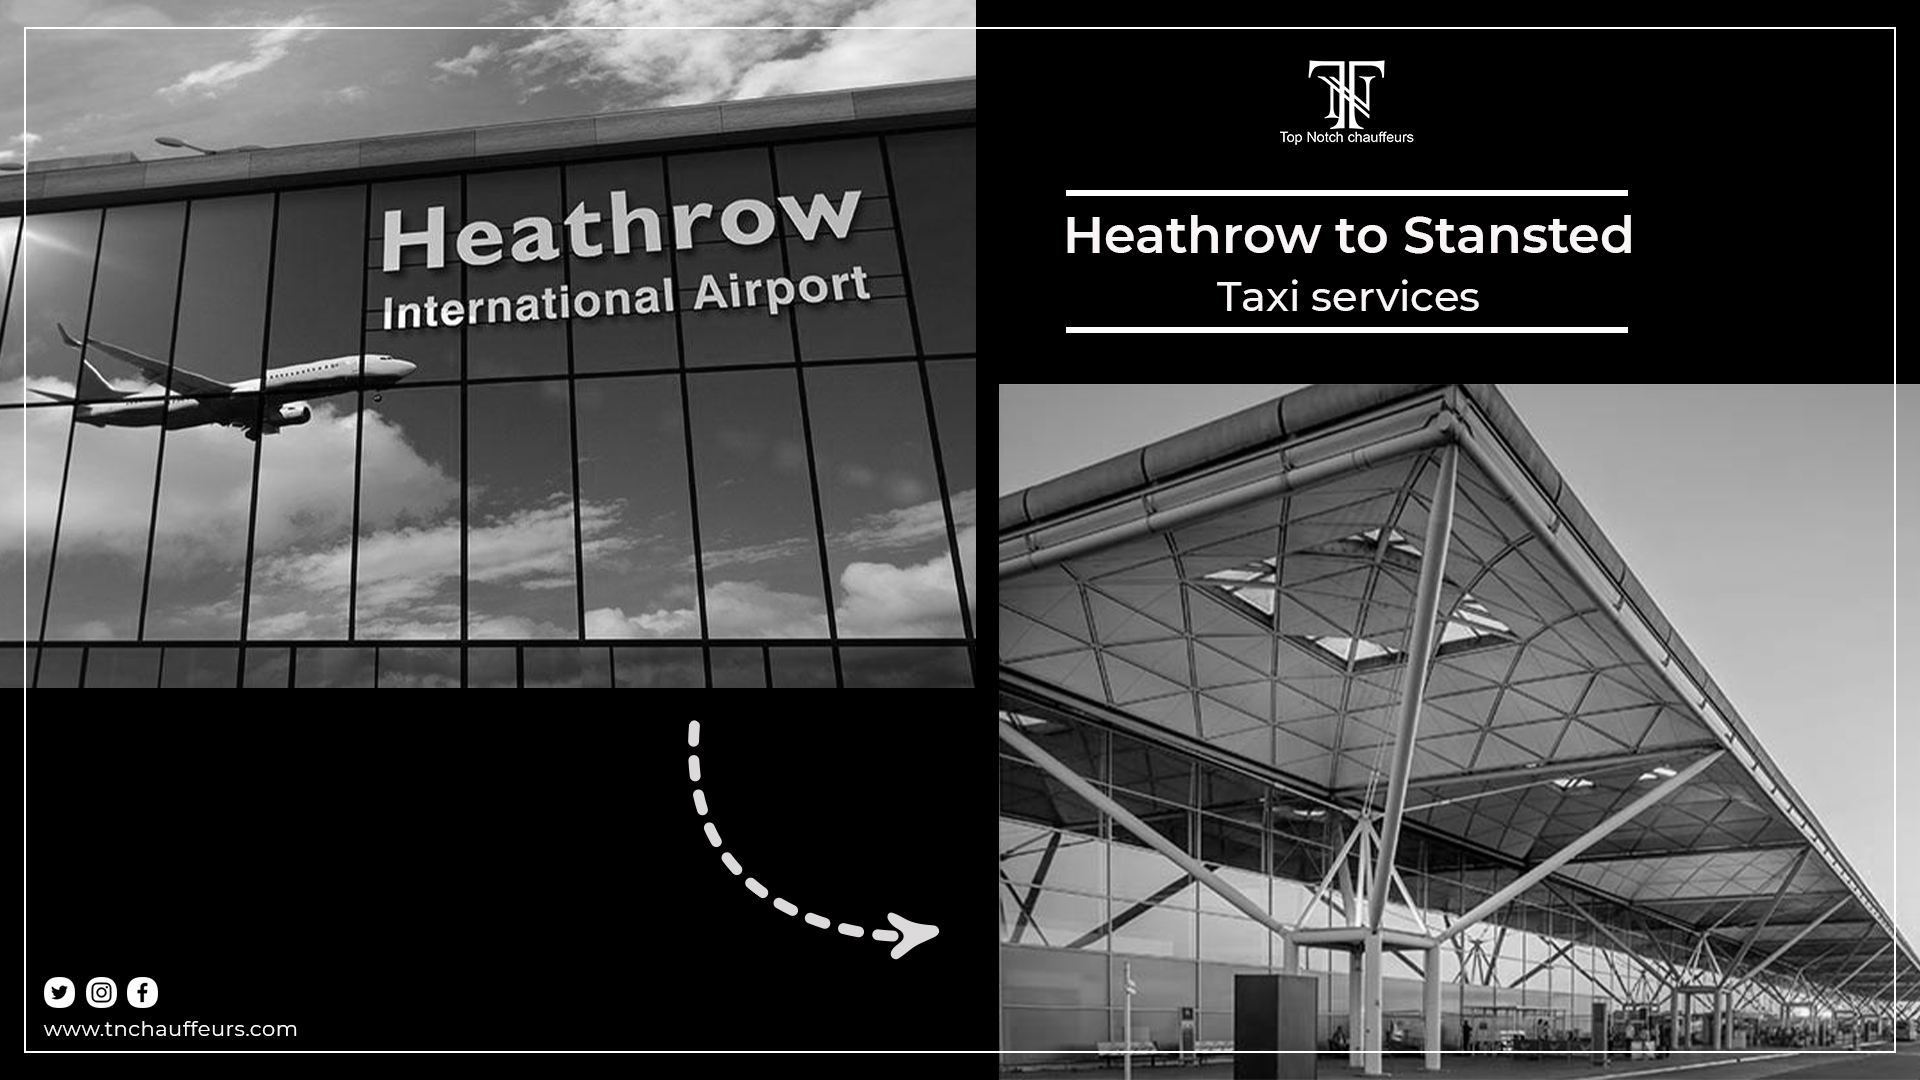 Heathrow to Stansted Taxi